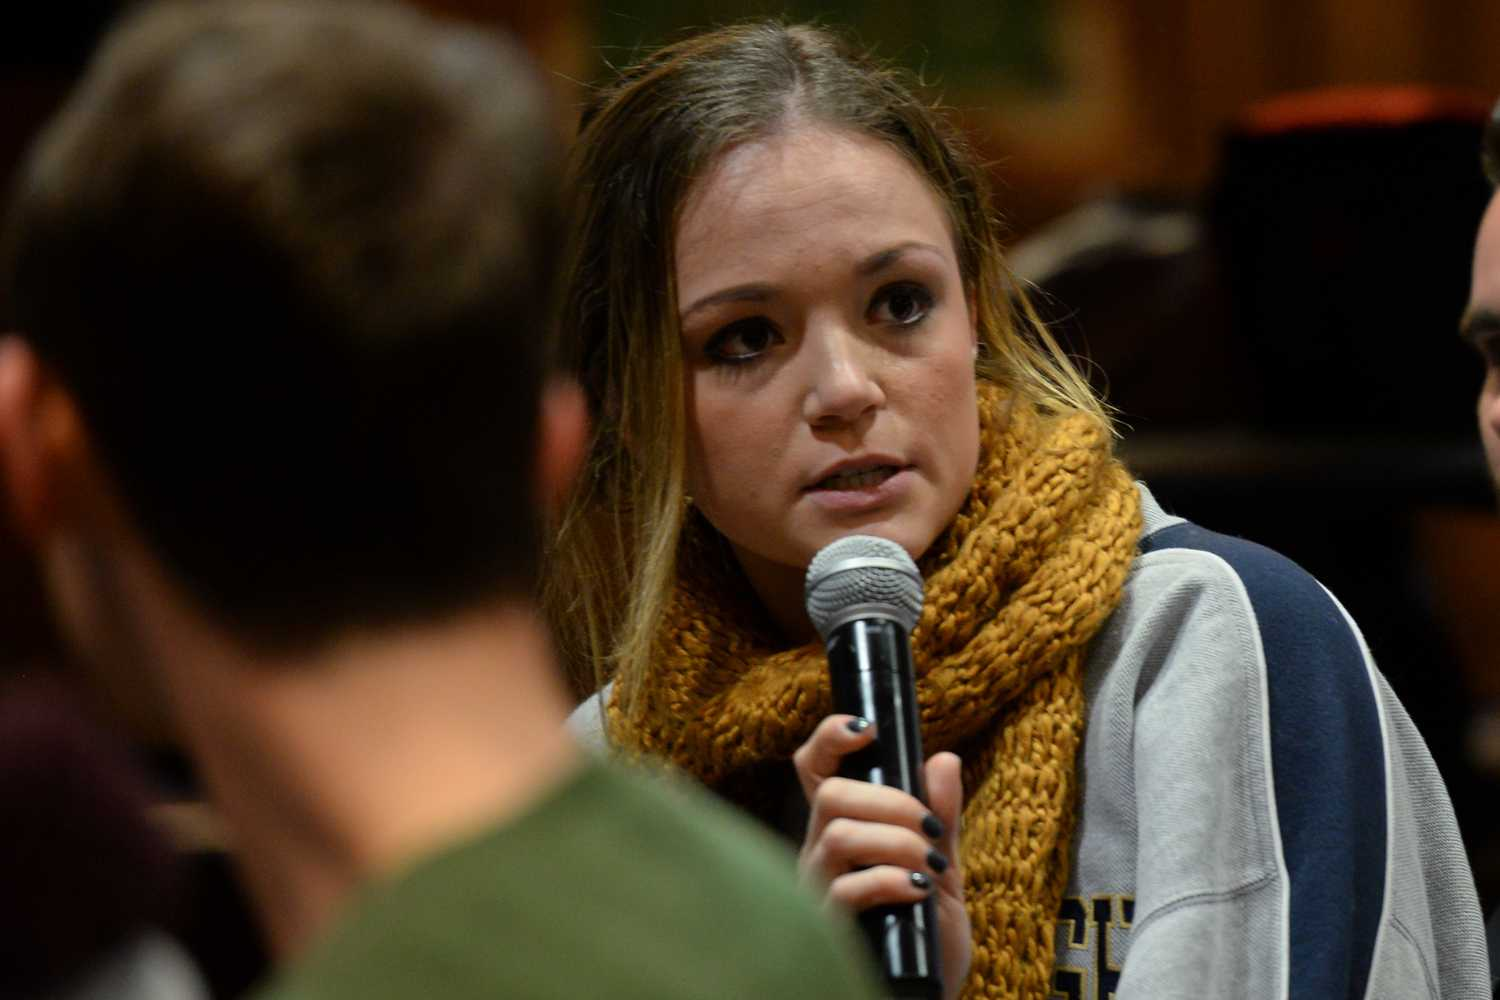 SGB board member Ciara Barry partakes in the Campus Master Plan discussion at Tuesday night's meeting. (Photo by Sarah Cutshall | Staff Photographer)